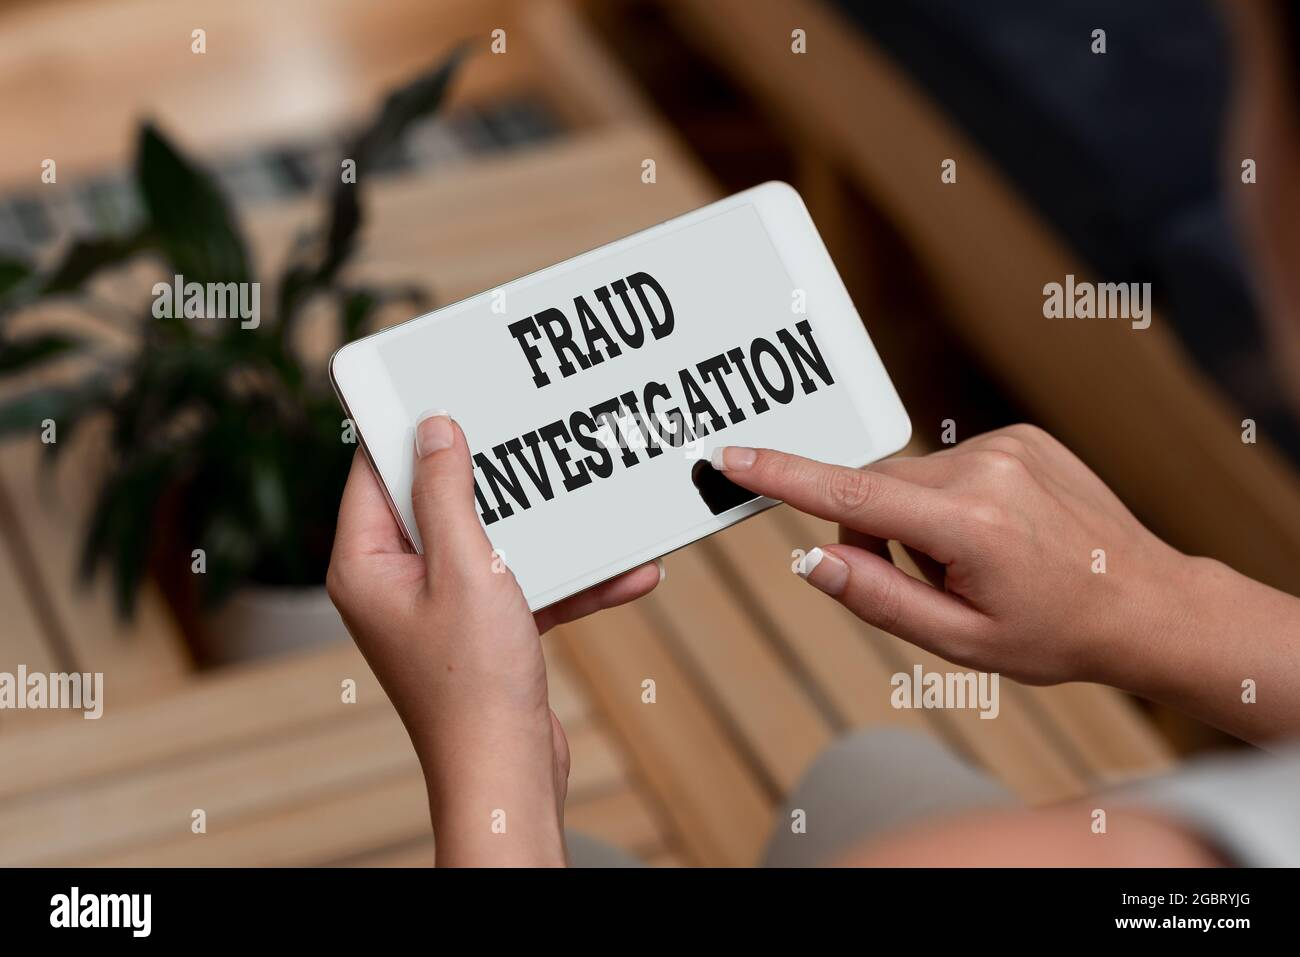 Conceptual caption Fraud Investigation. Business concept process of determining whether a scam has taken place Voice And Video Calling Capabilities Stock Photo